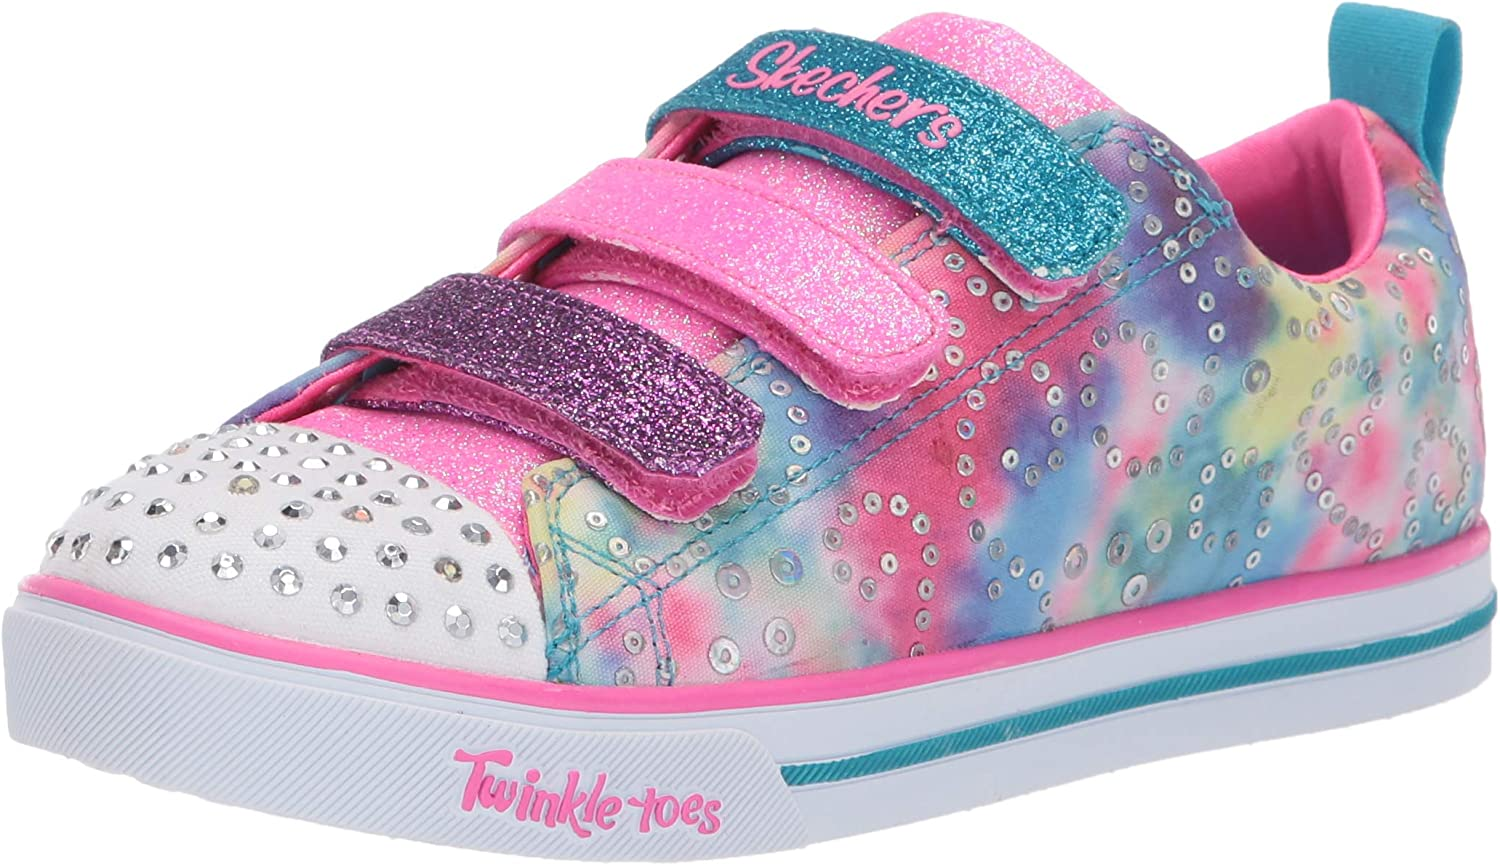 Skechers Girl's Sparkle Lite Trainers